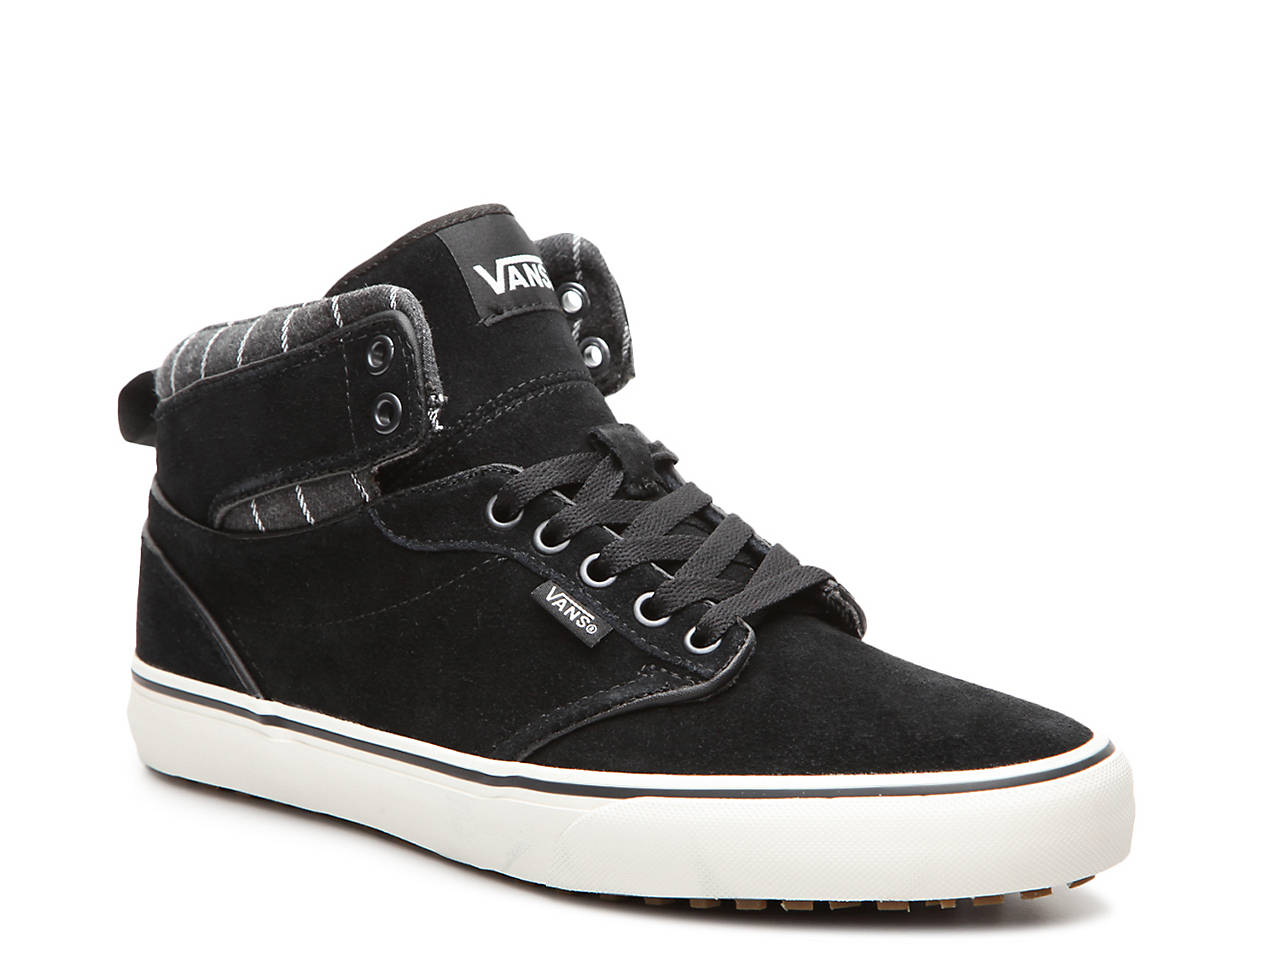 162773e4f6 Vans Atwood Hi MTE High-Top Sneaker - Men s Men s Shoes